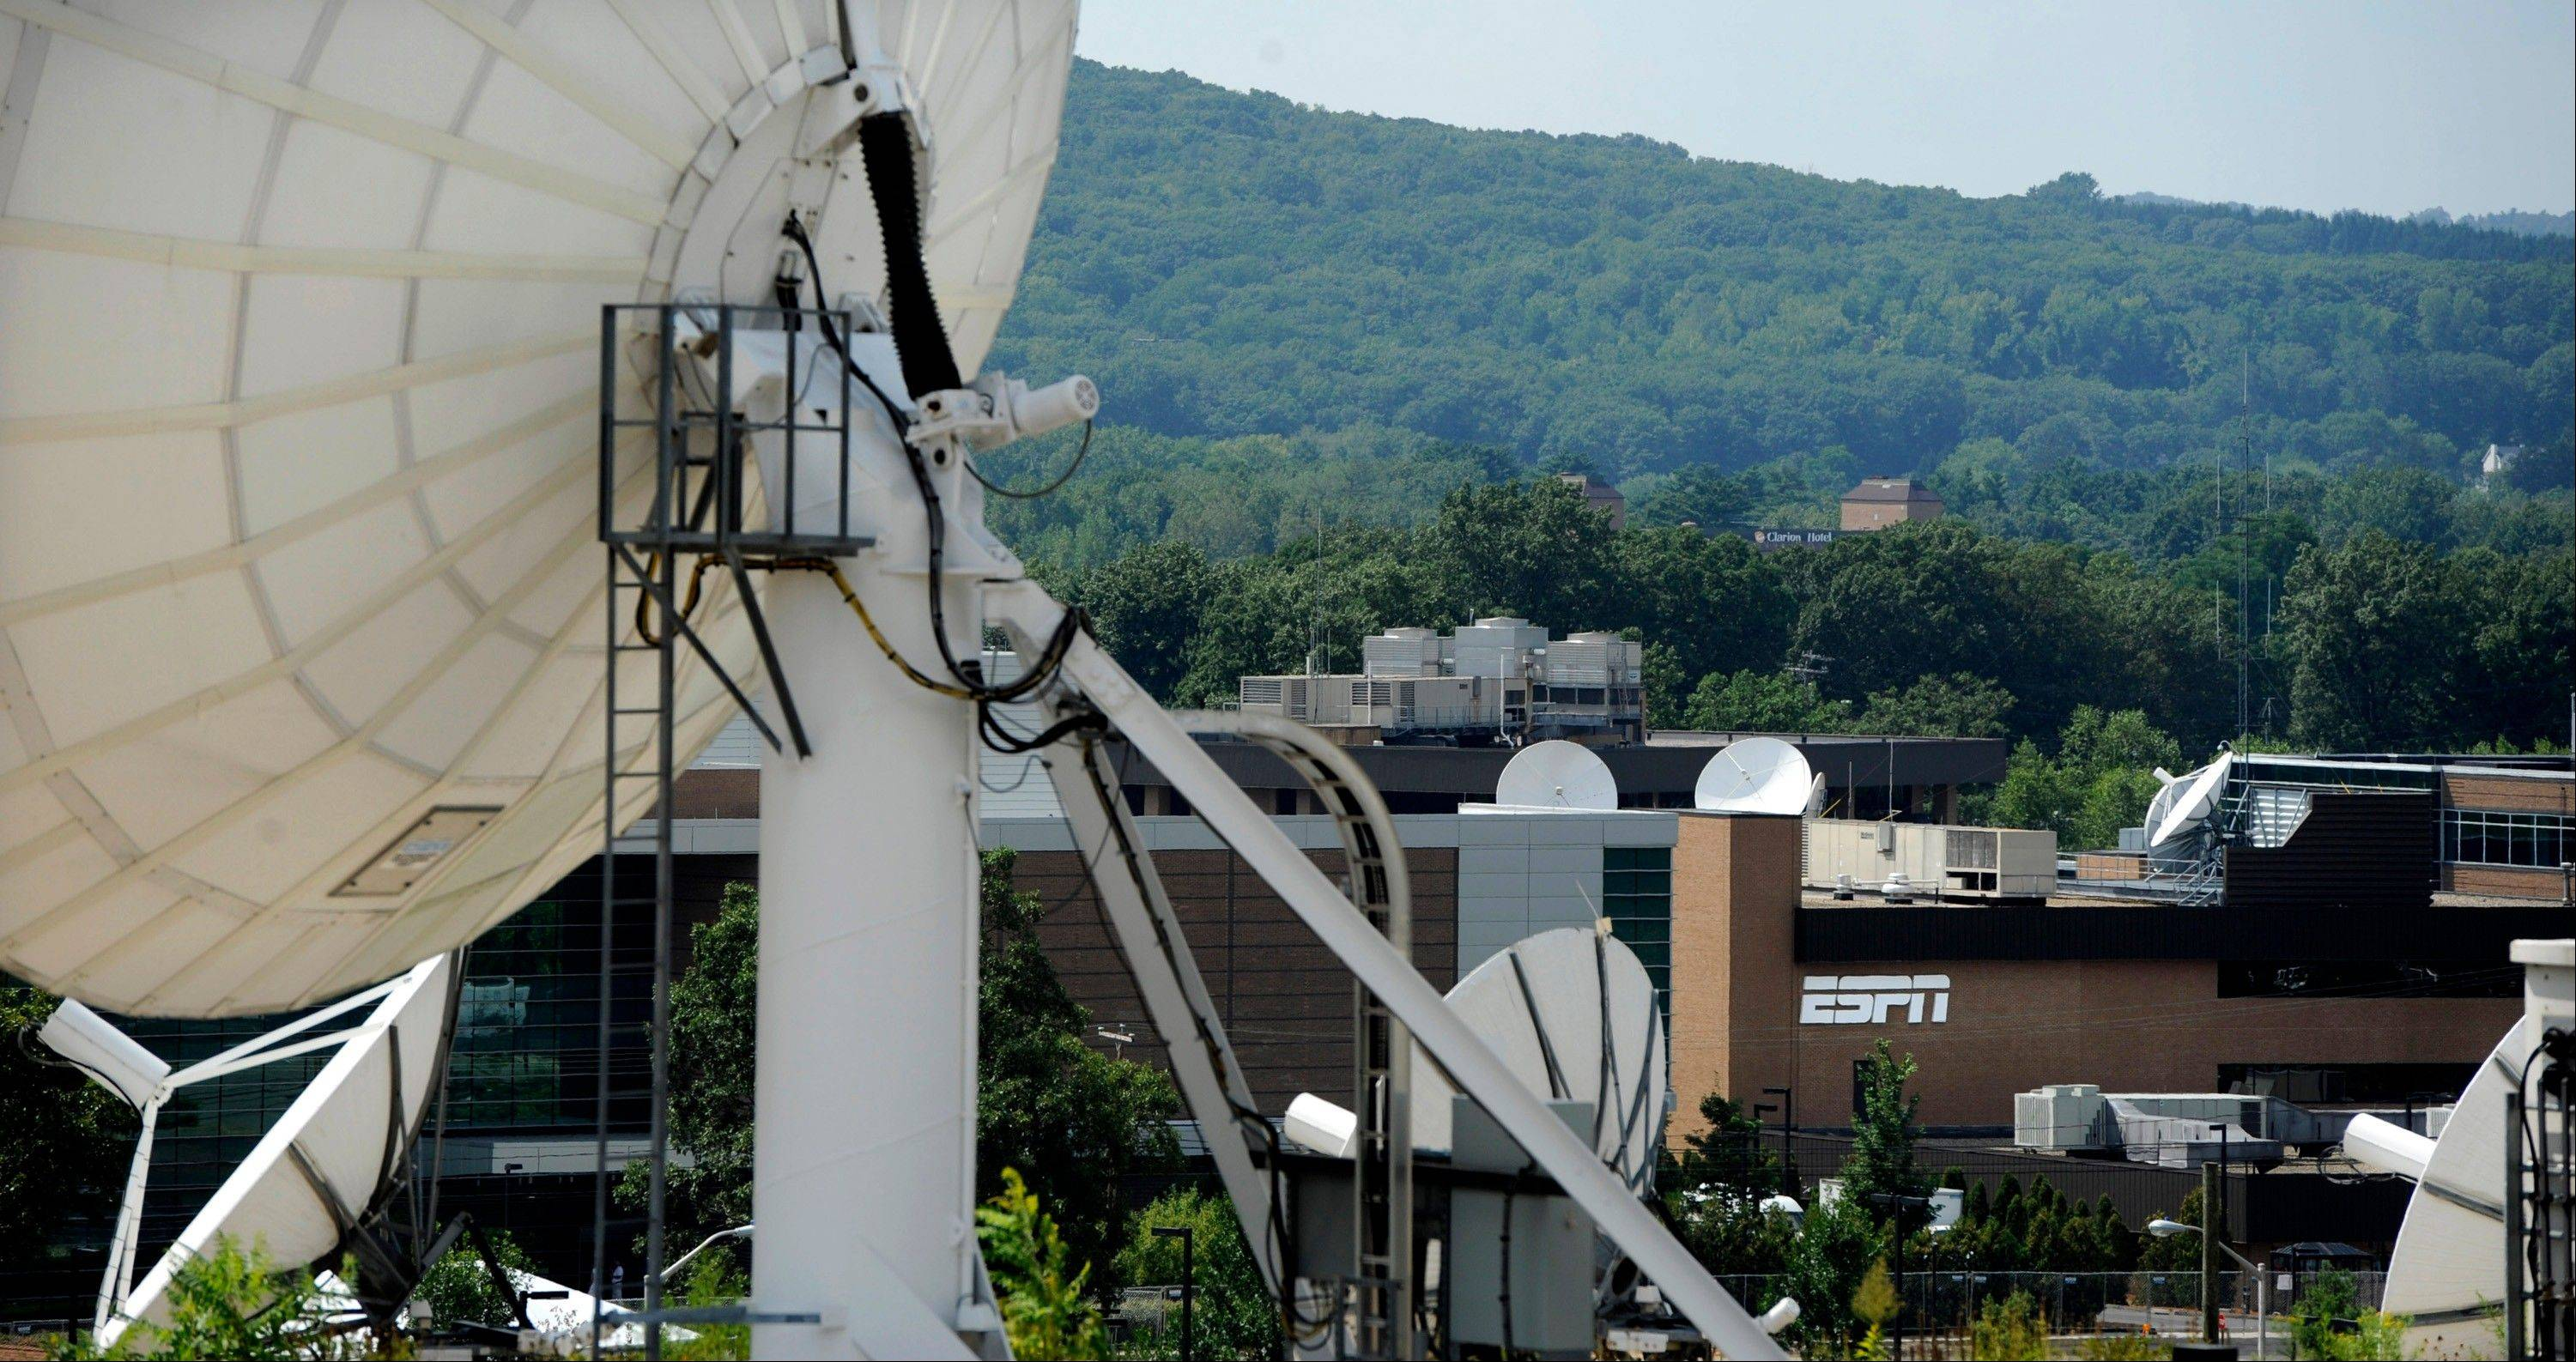 Associated Press/Aug. 2, 2011Satellite dishes dot the campus of ESPN in Bristol, Conn.